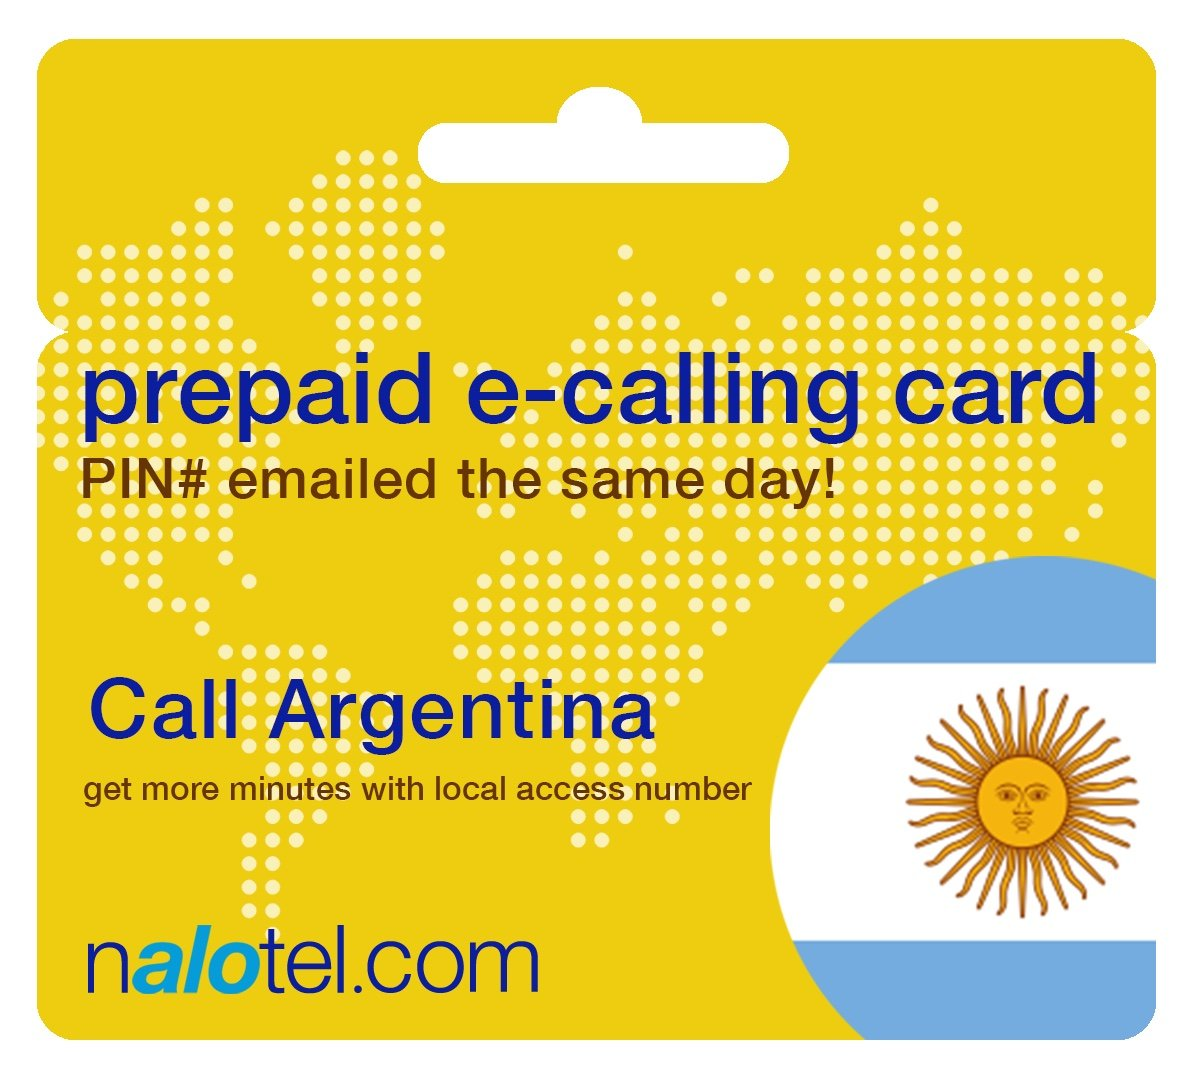 Prepaid Phone Card - Cheap International E-Calling Card $20 for Argentina with same day emailed PIN, no postage necessary